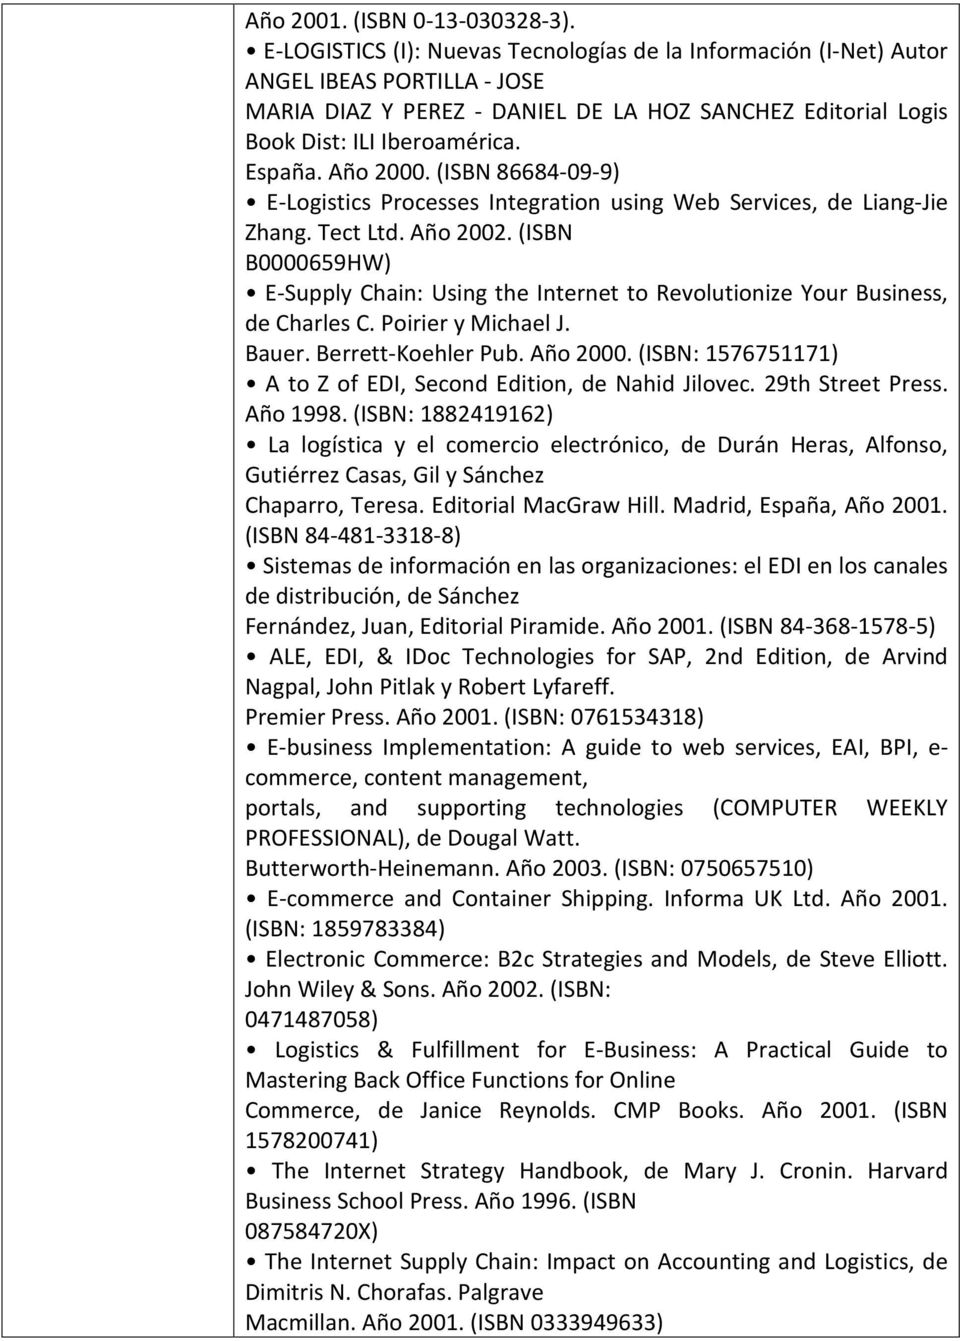 Año 2000. (ISBN 86684-09-9) E-Logistics Processes Integration using Web Services, de Liang-Jie Zhang. Tect Ltd. Año 2002.